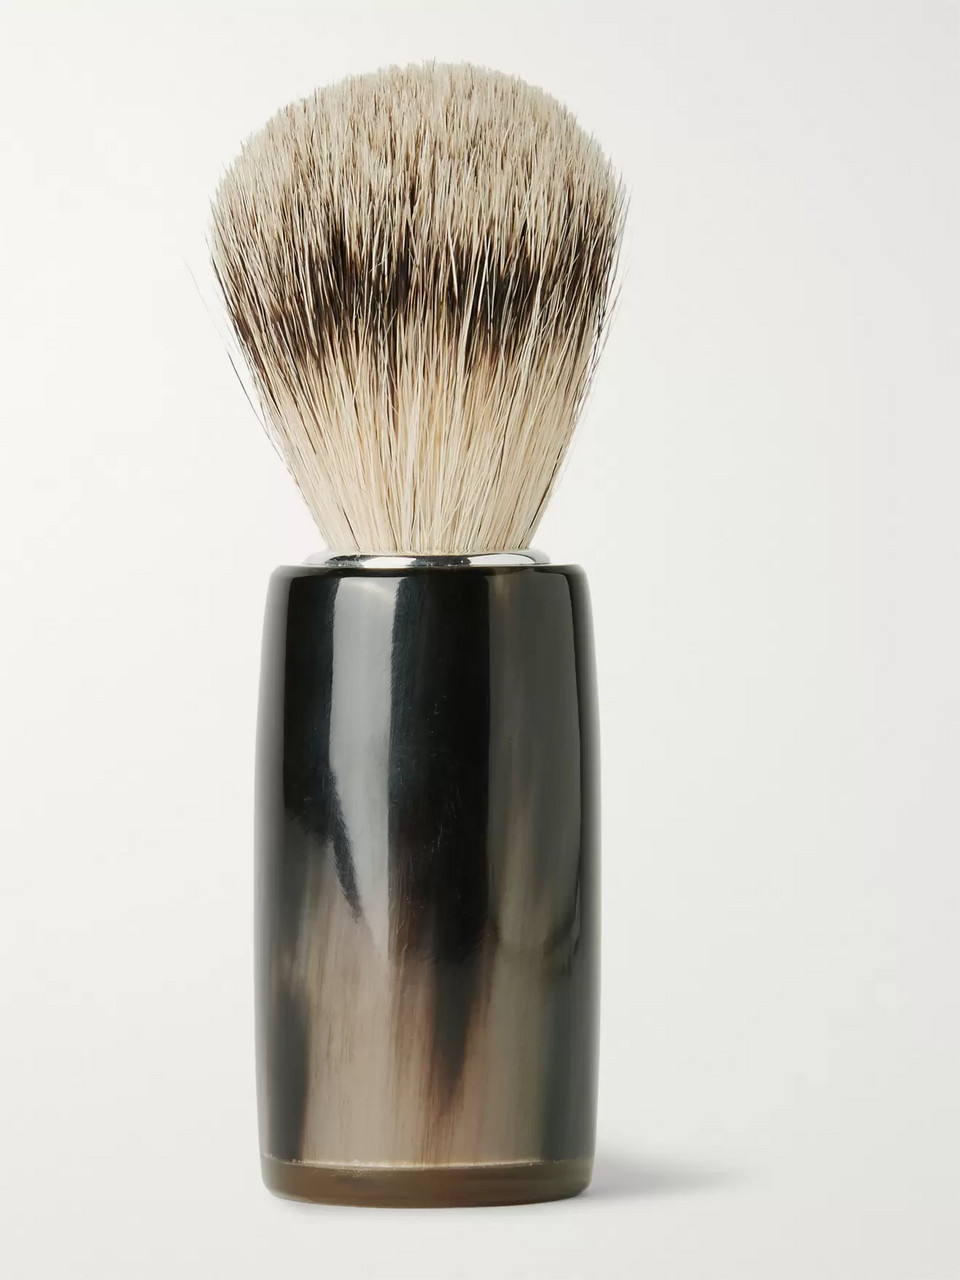 Abbeyhorn Horn and Super Badger Bristle Shaving Brush